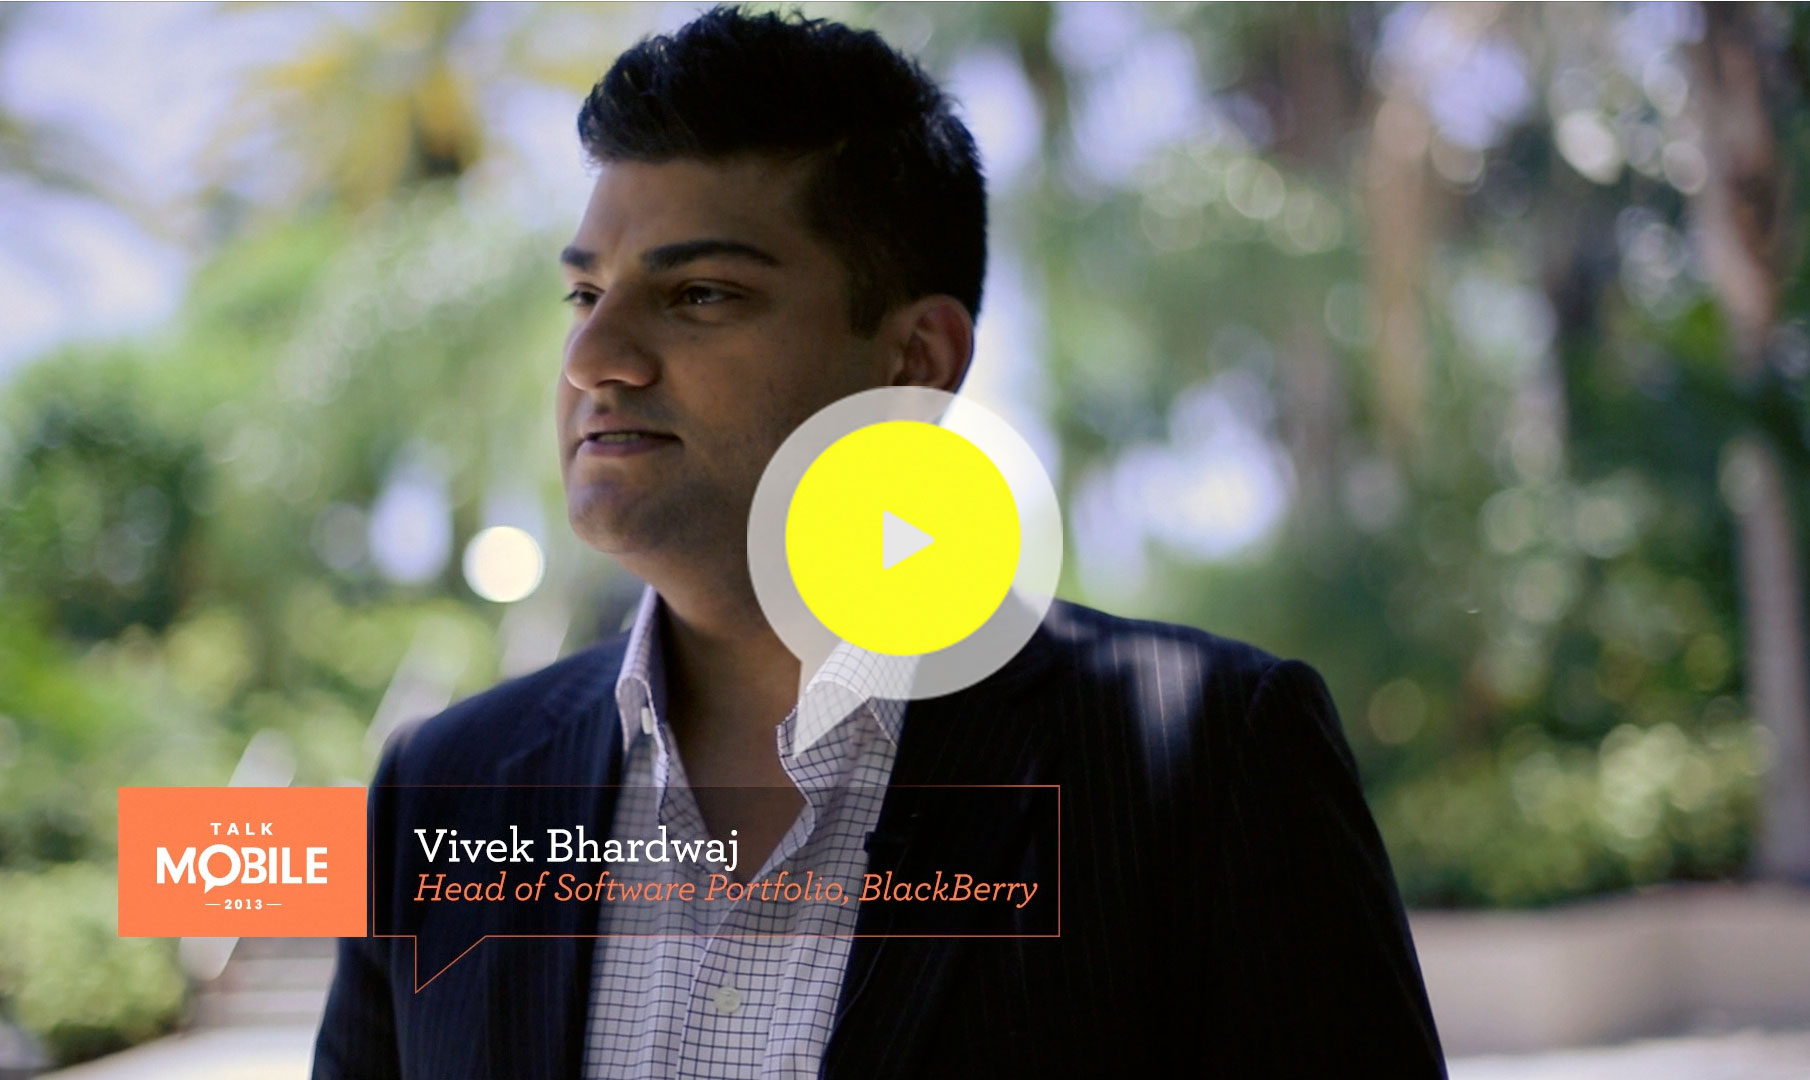 Watch Vivek Bhardwaj talk about making great keyboards.